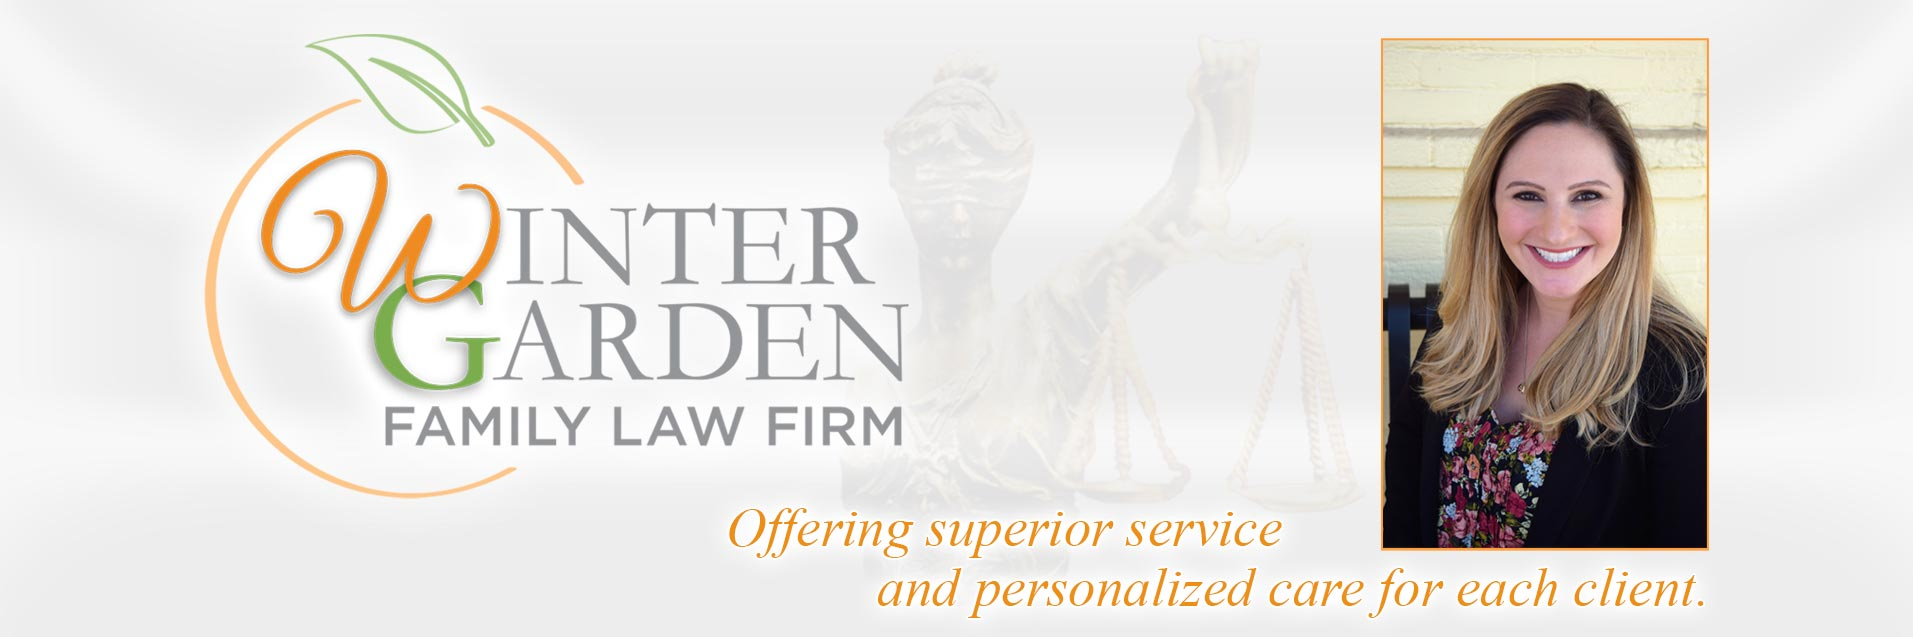 Winter Garden Family Law Firm